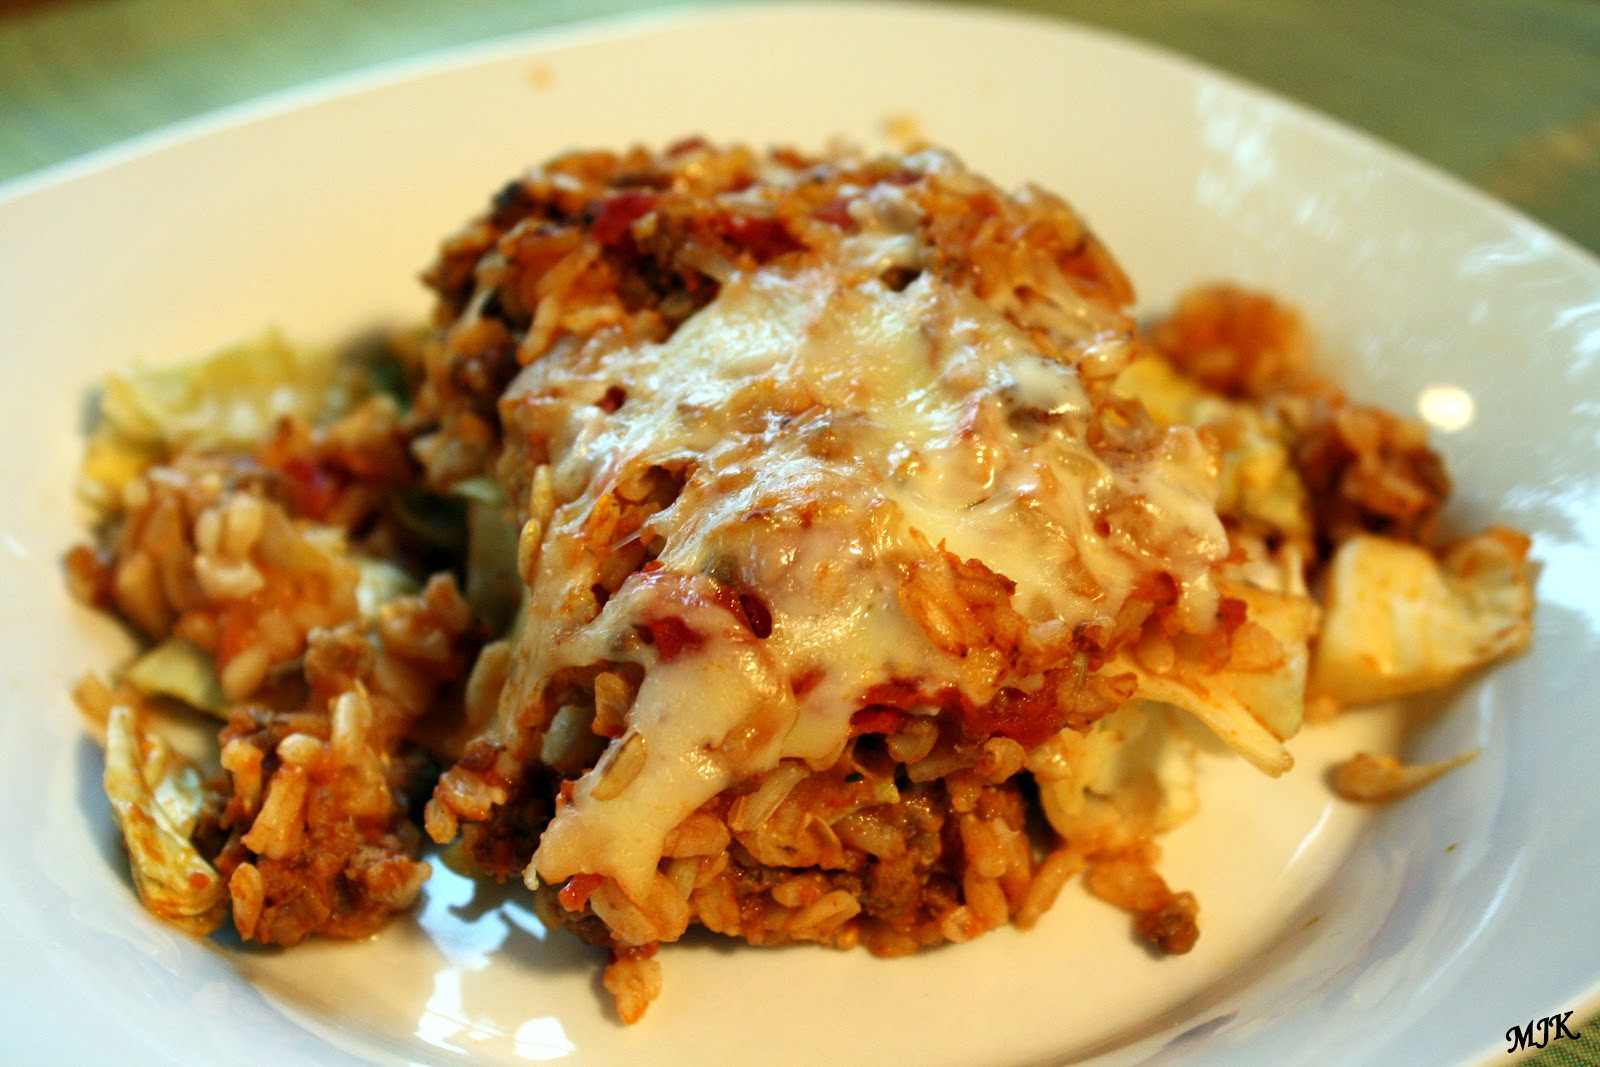 Stuffed Cabbage Casserole  Melissa s Cuisine Stuffed Cabbage Casserole